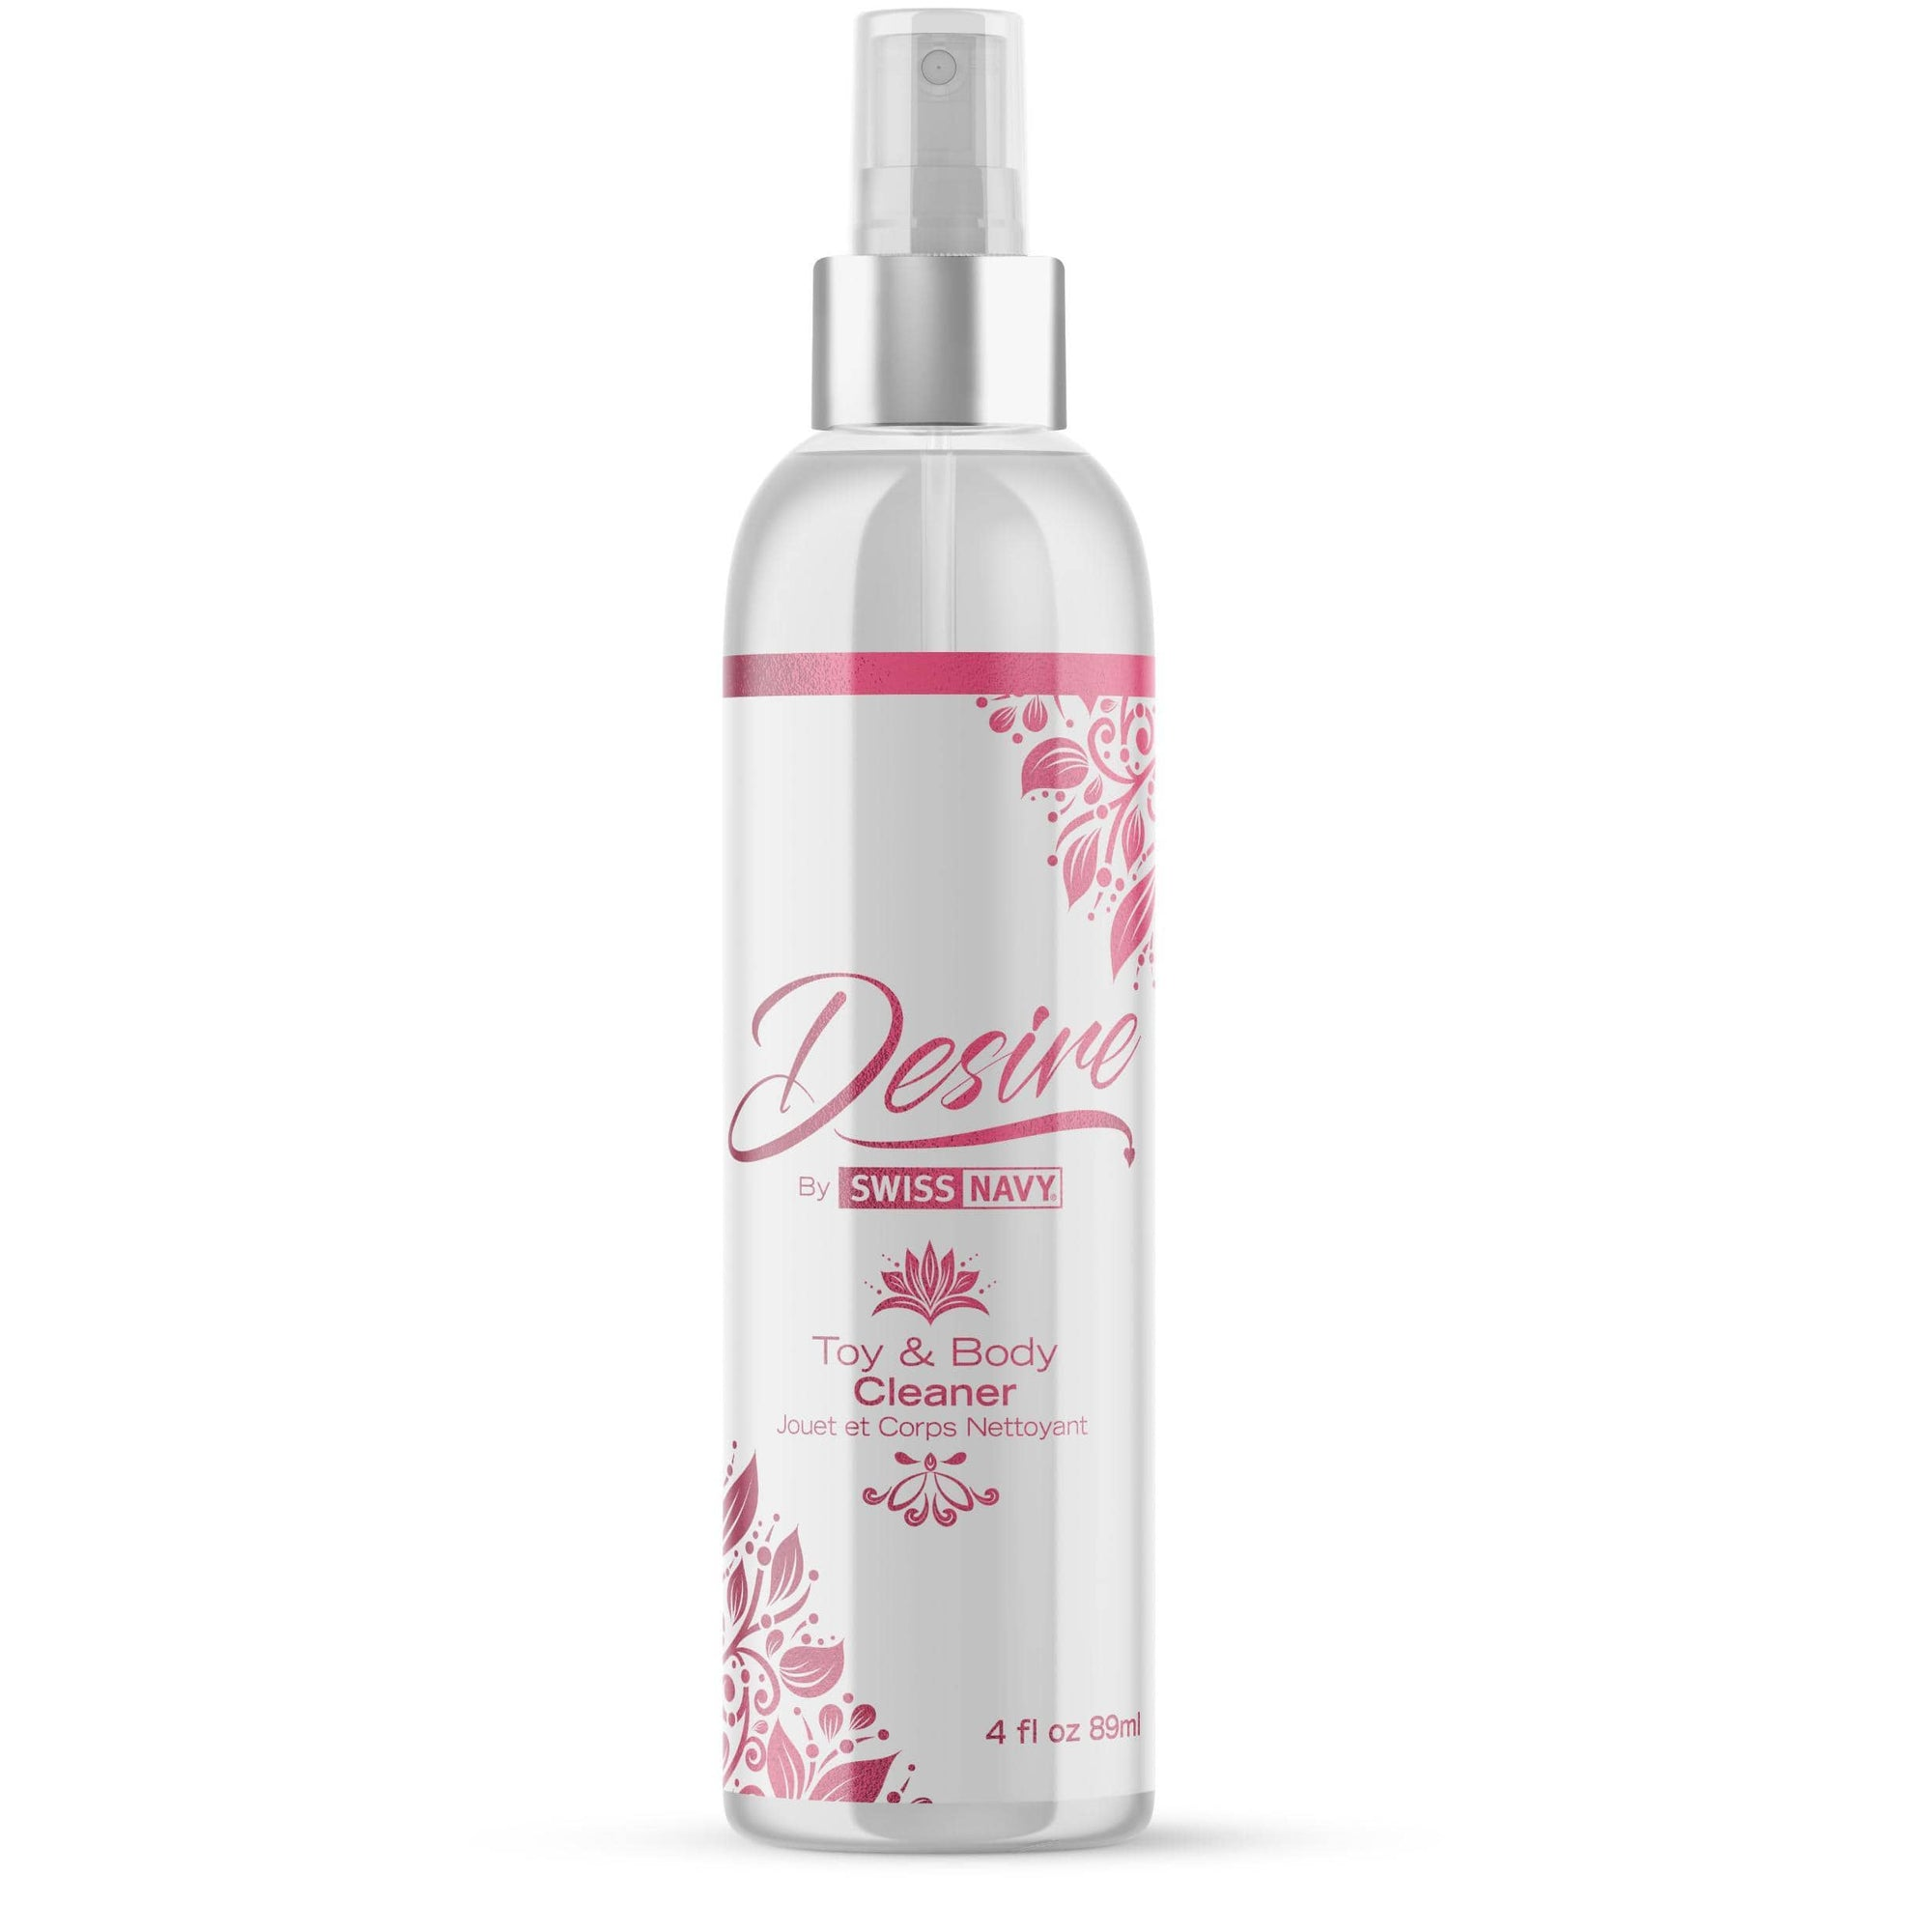 desire toy and body cleaner 4 fl oz